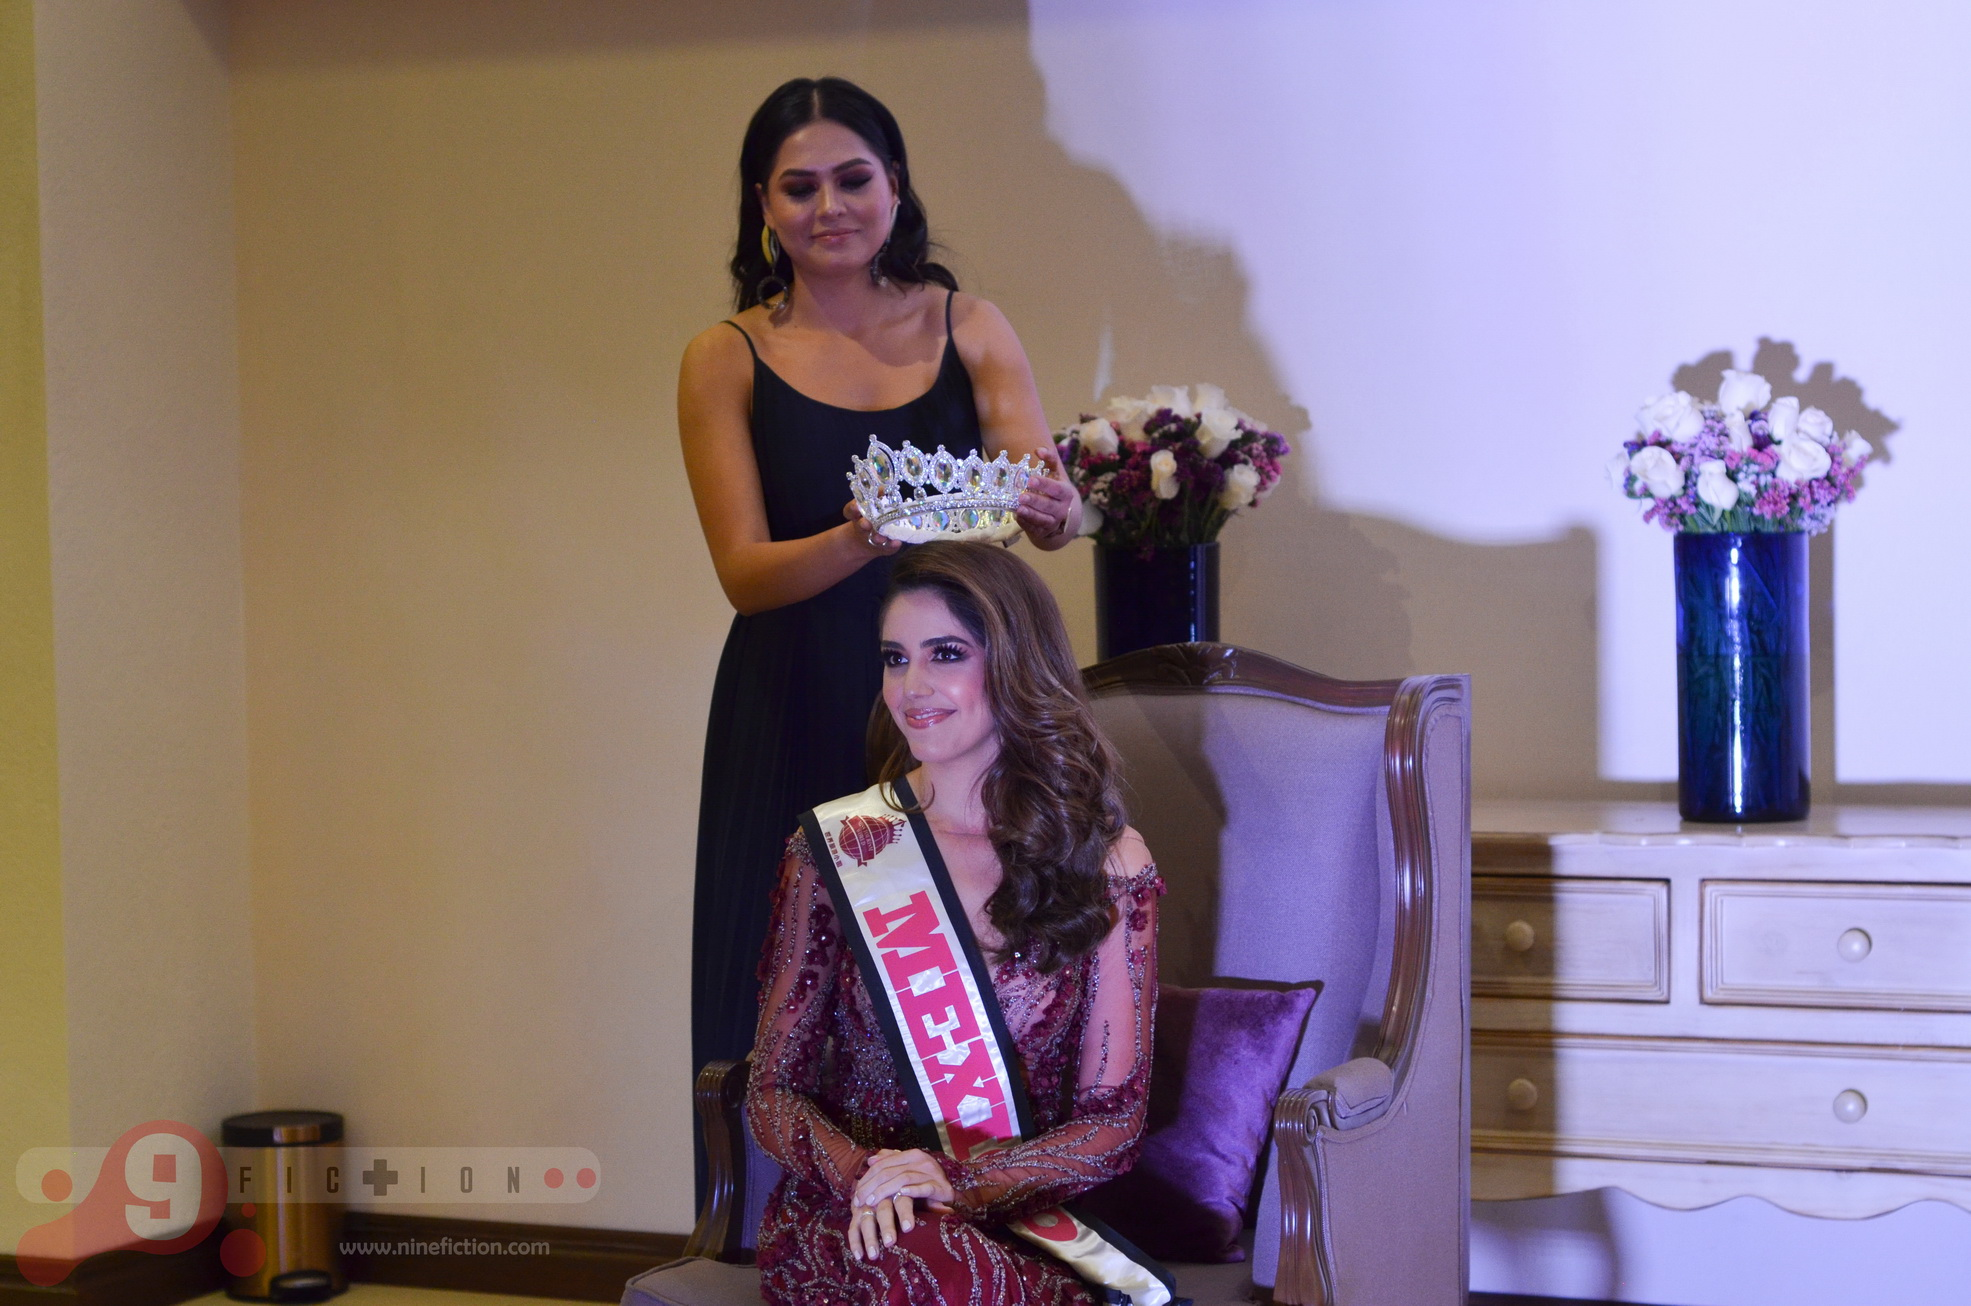 Miss Turismo 2019 - Guadalajara - Foto Salvador Tabares - Nine Fiction 08